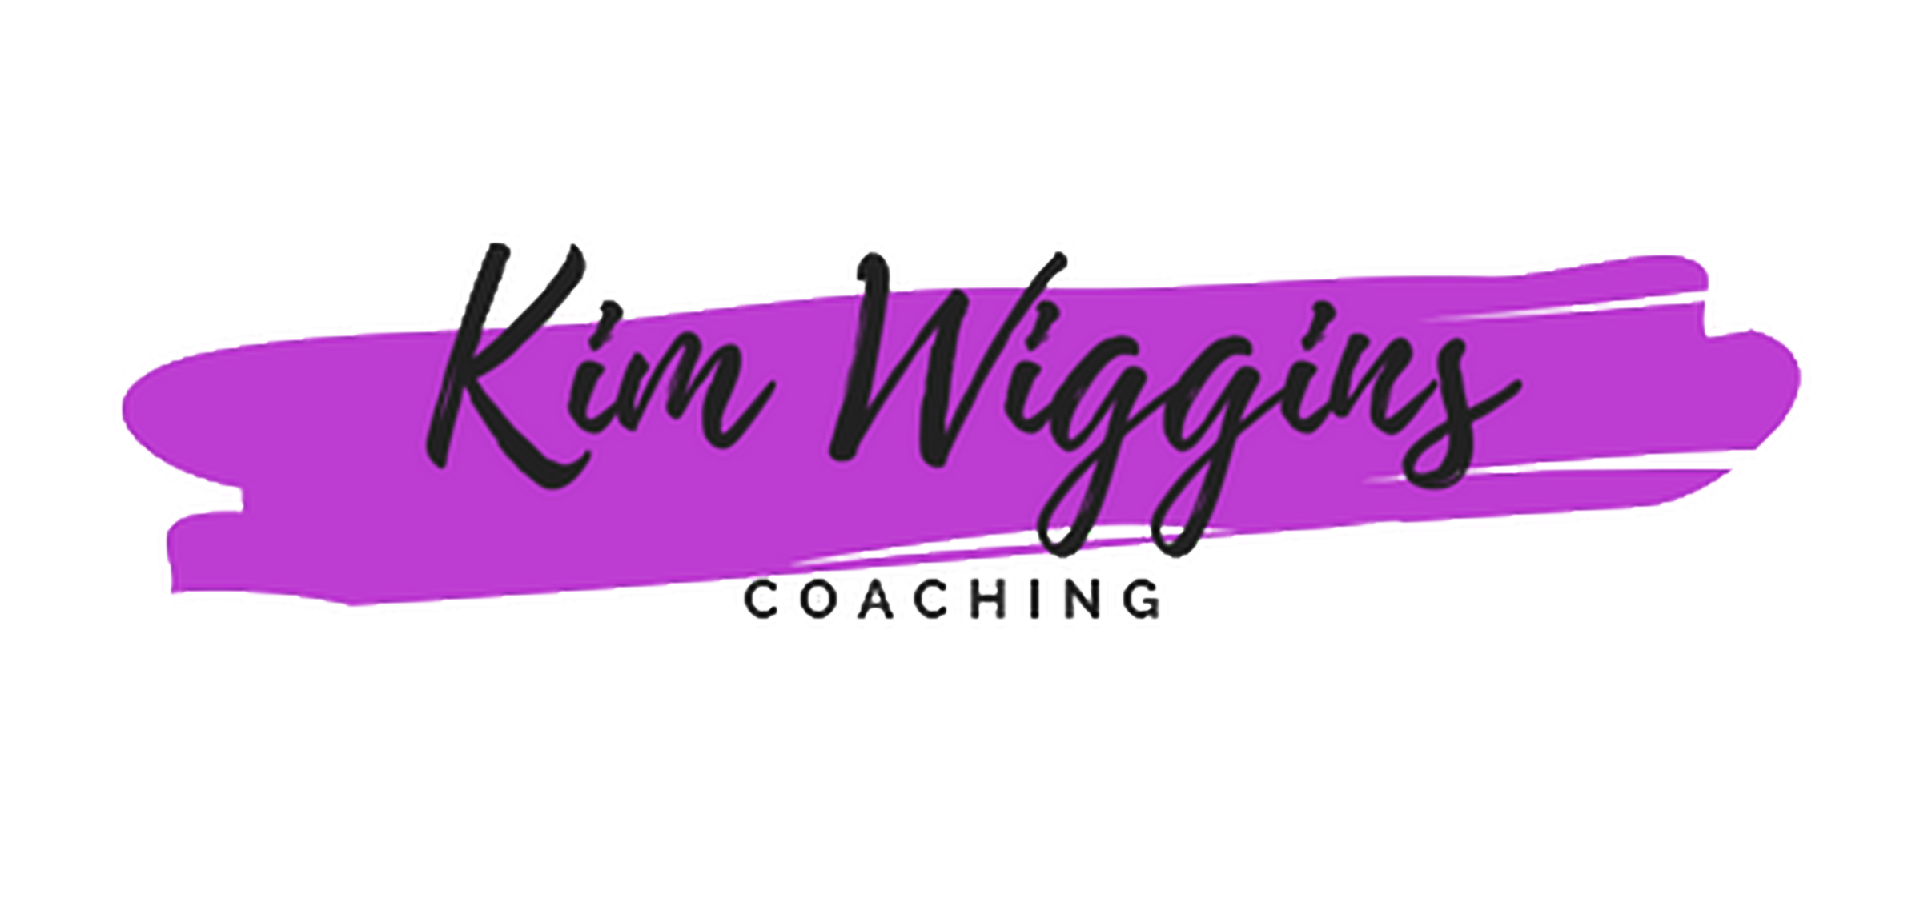 Kim Wiggins Coaching